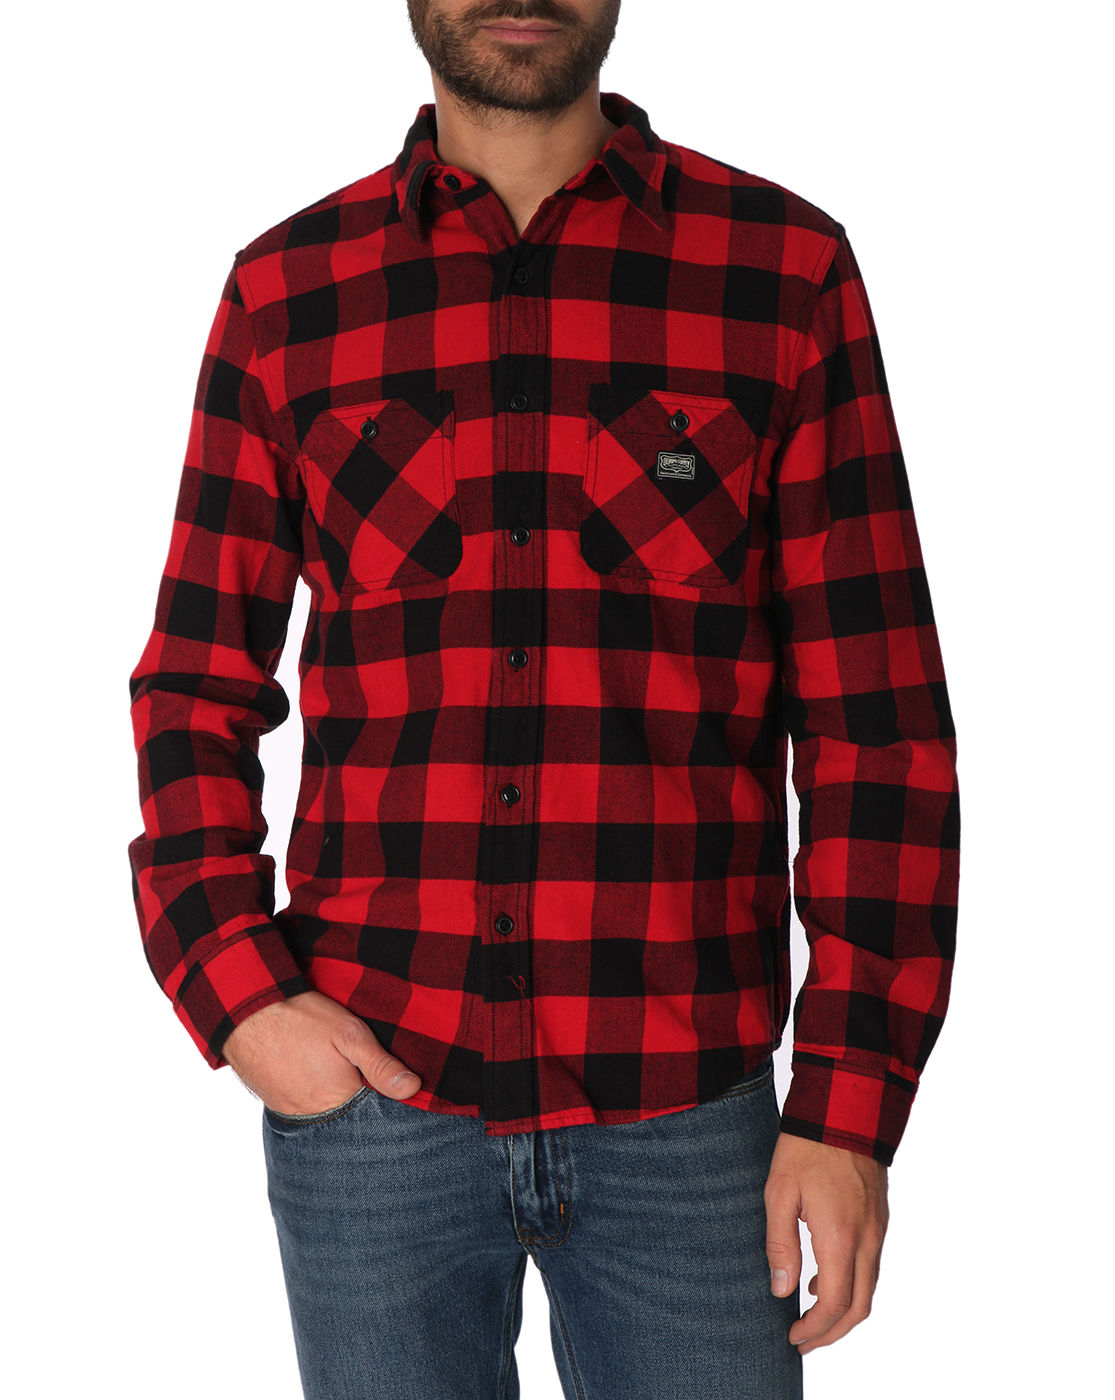 Denim supply ralph lauren black and red plaid shirt in for Dark red plaid shirt